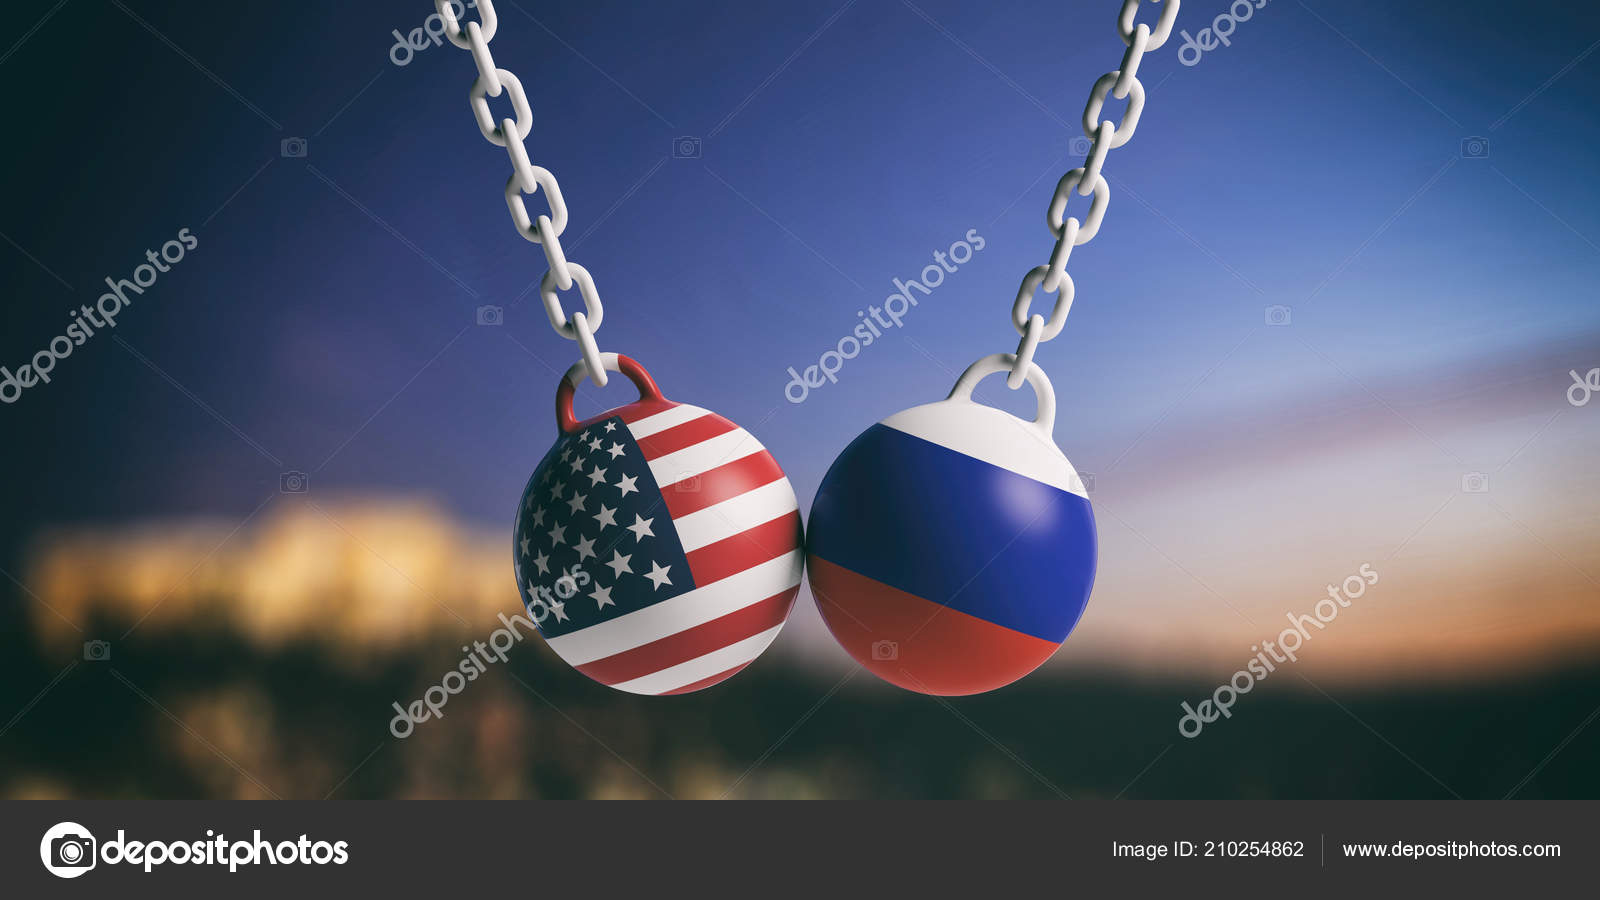 America Russia Relations Usa Russian Flags Wrecking Balls Swinging Blue —  Stock Photo